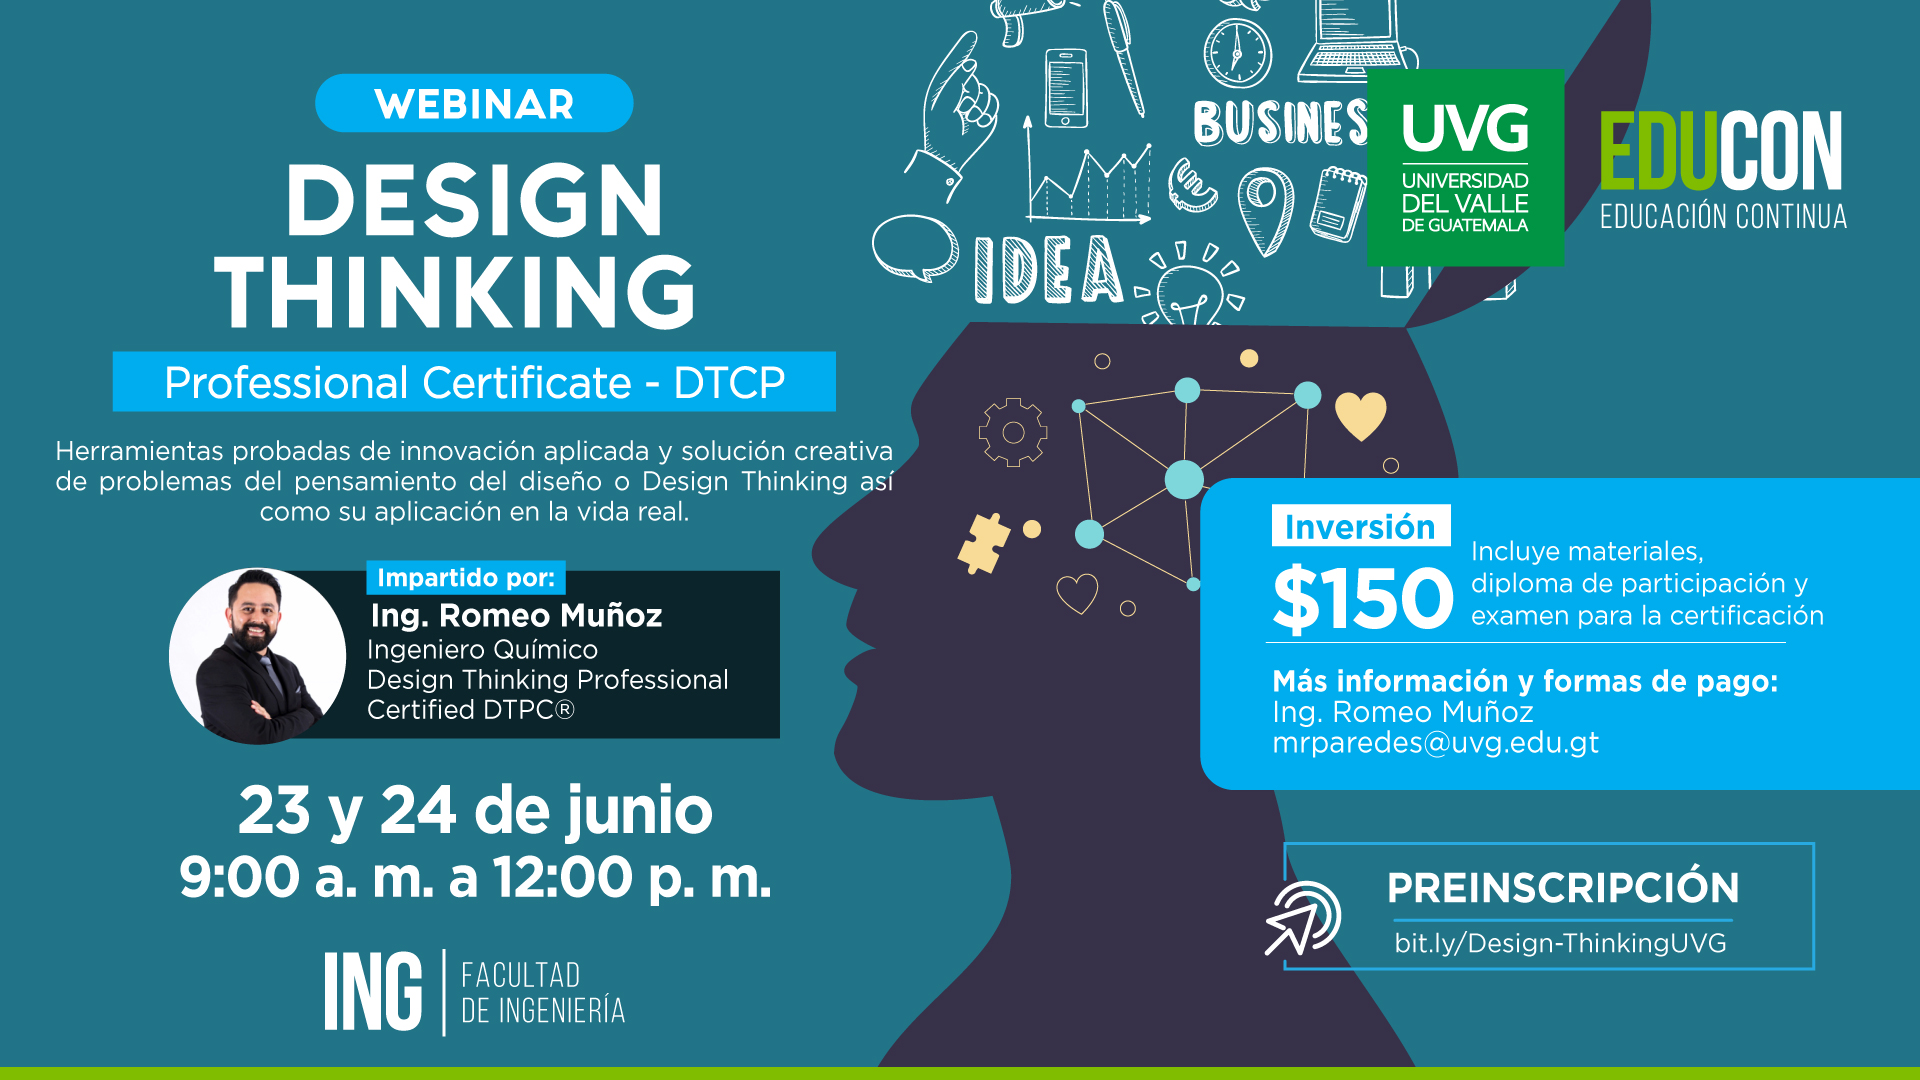 DESIGN THINKING PROFESSIONAL CERTIFICATE - DTCP